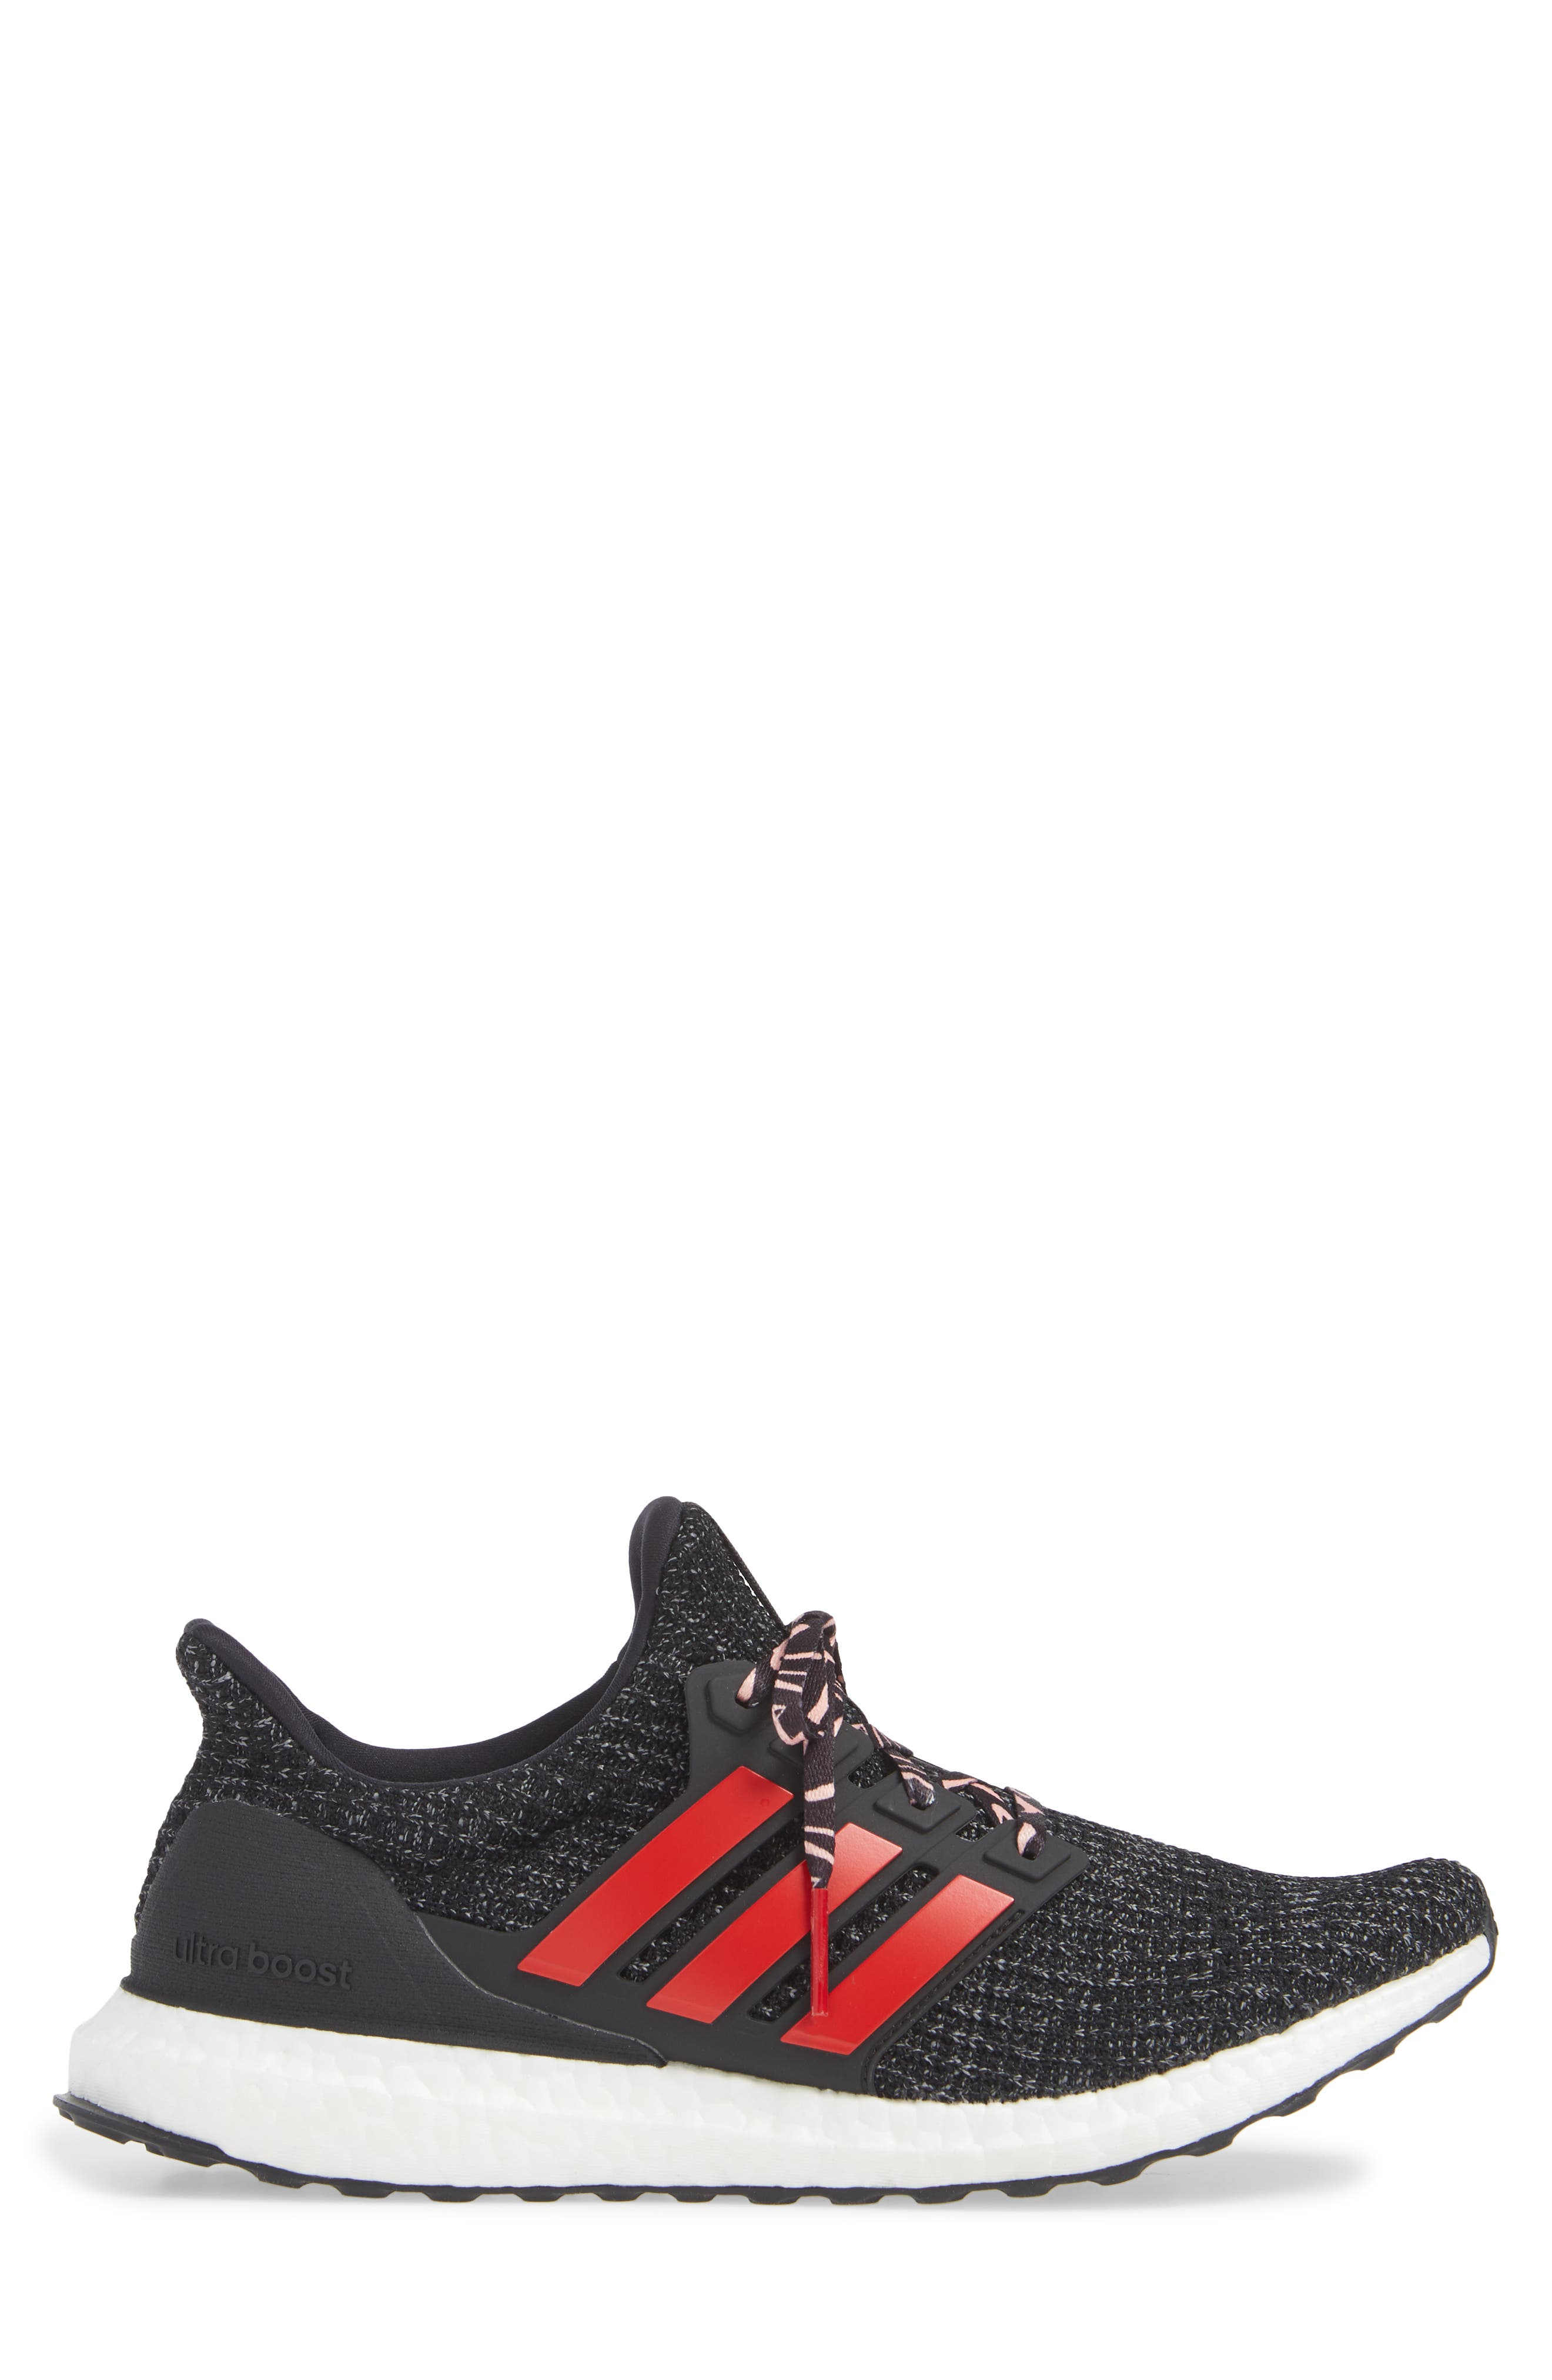 ADIDAS, 'UltraBoost' Running Shoe, Alternate thumbnail 3, color, CORE BLACK/ SCARLET/ GREY